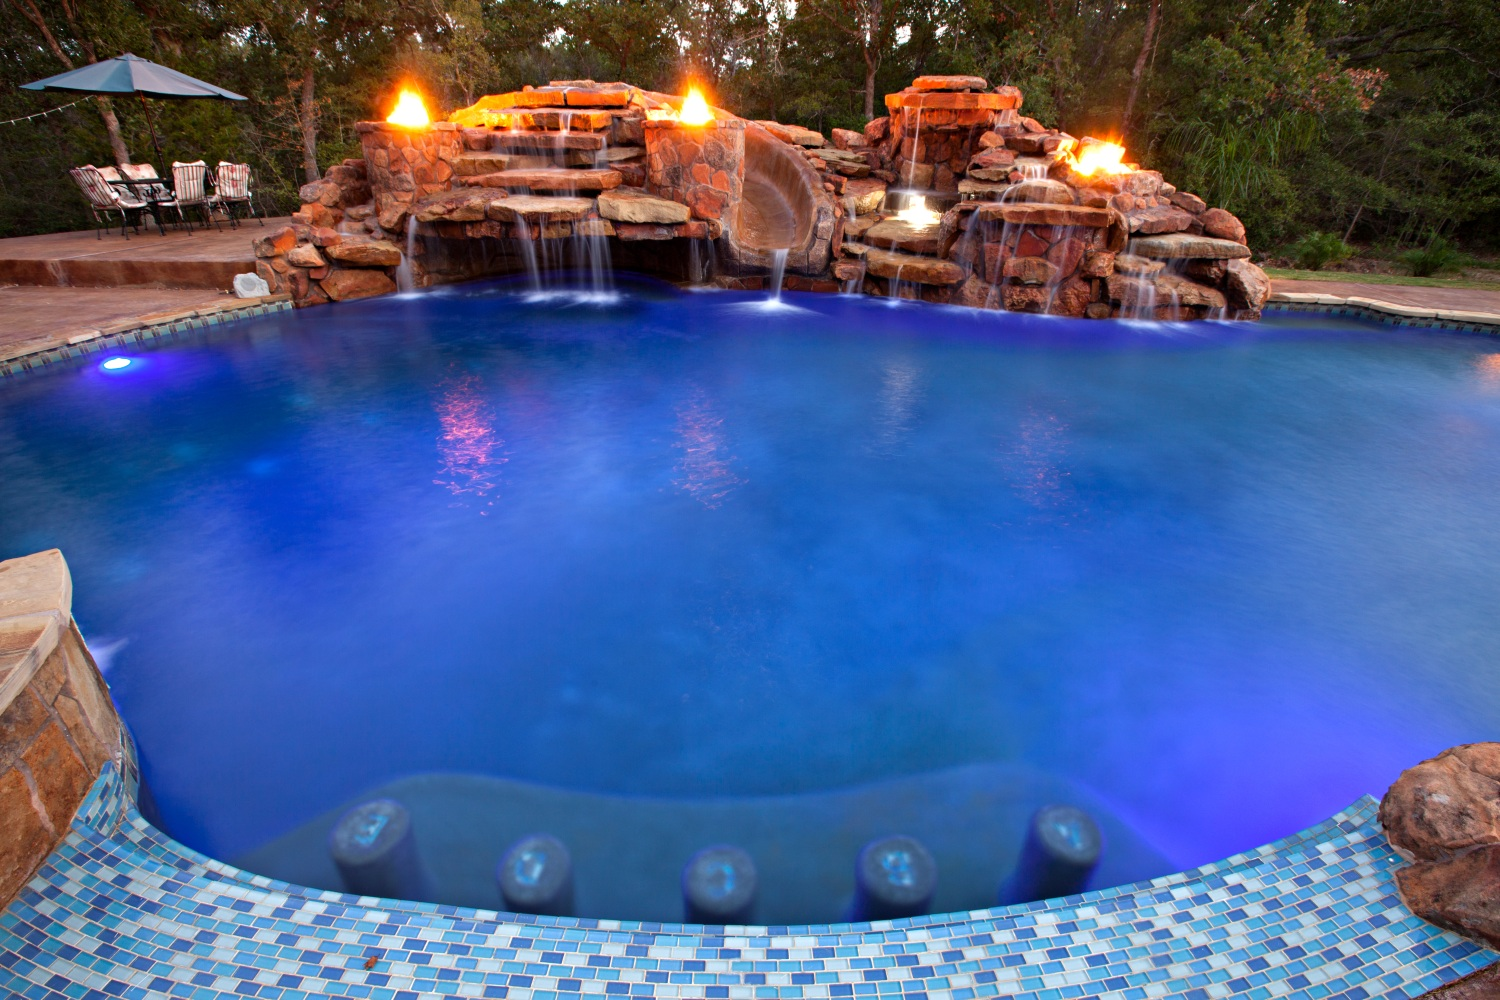 custom pool fire bowls slide waterfall sundeck jets - Cool Pools With Waterfalls And Slides